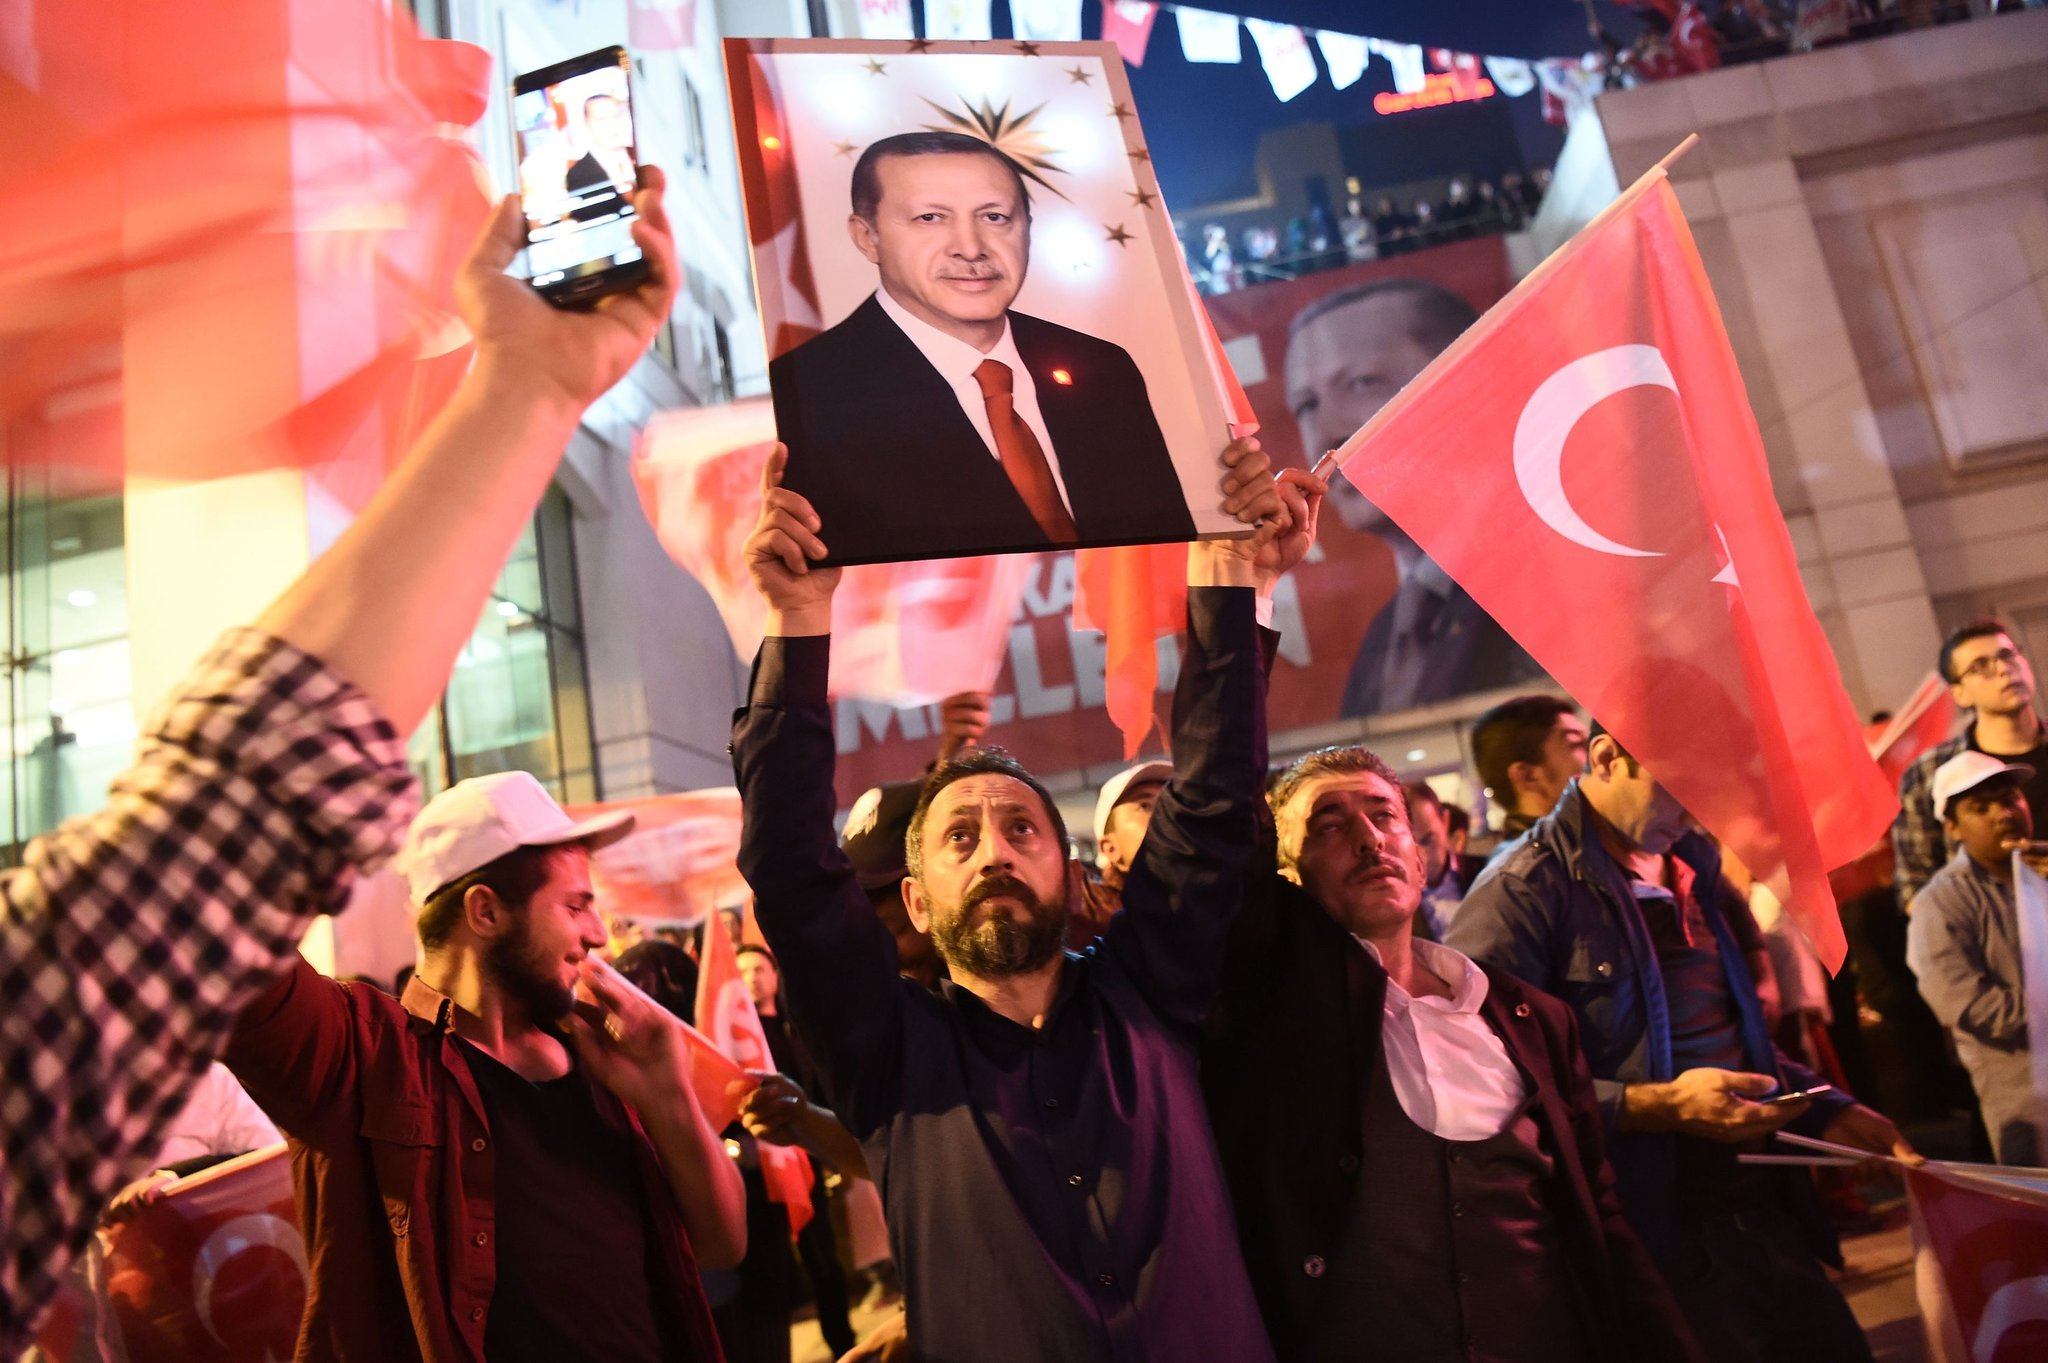 turkey faces difficulties post-referendum challenges hinh 0